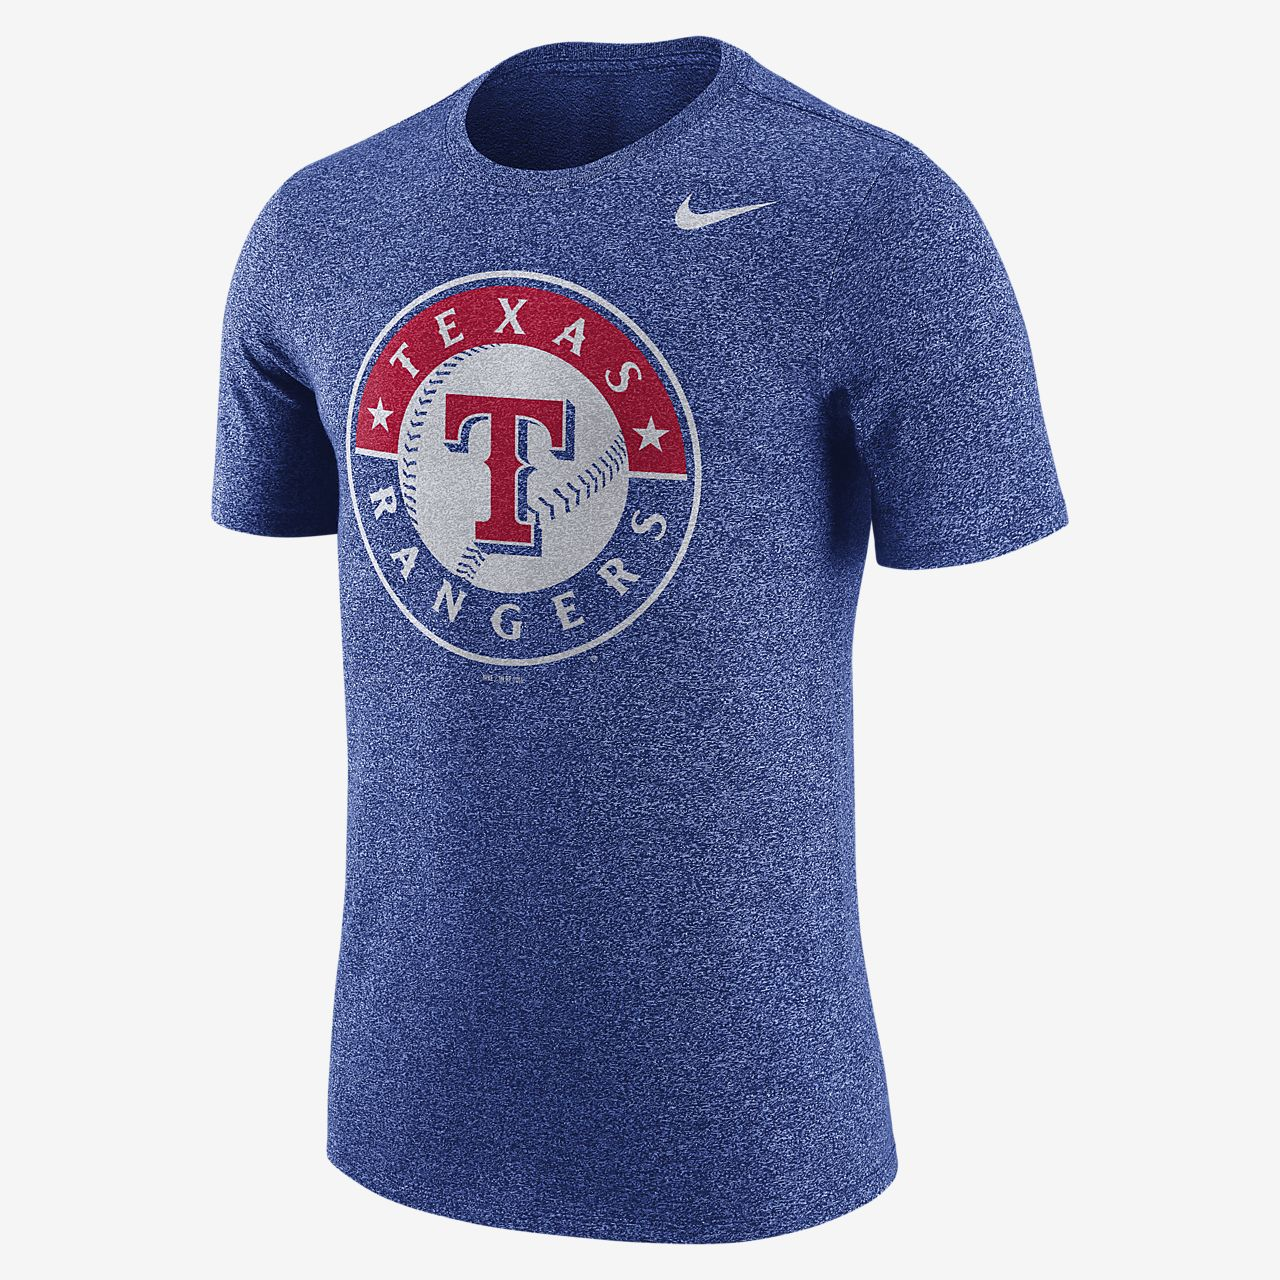 Nike Marled (MLB Rangers) Men's T-Shirts Royal